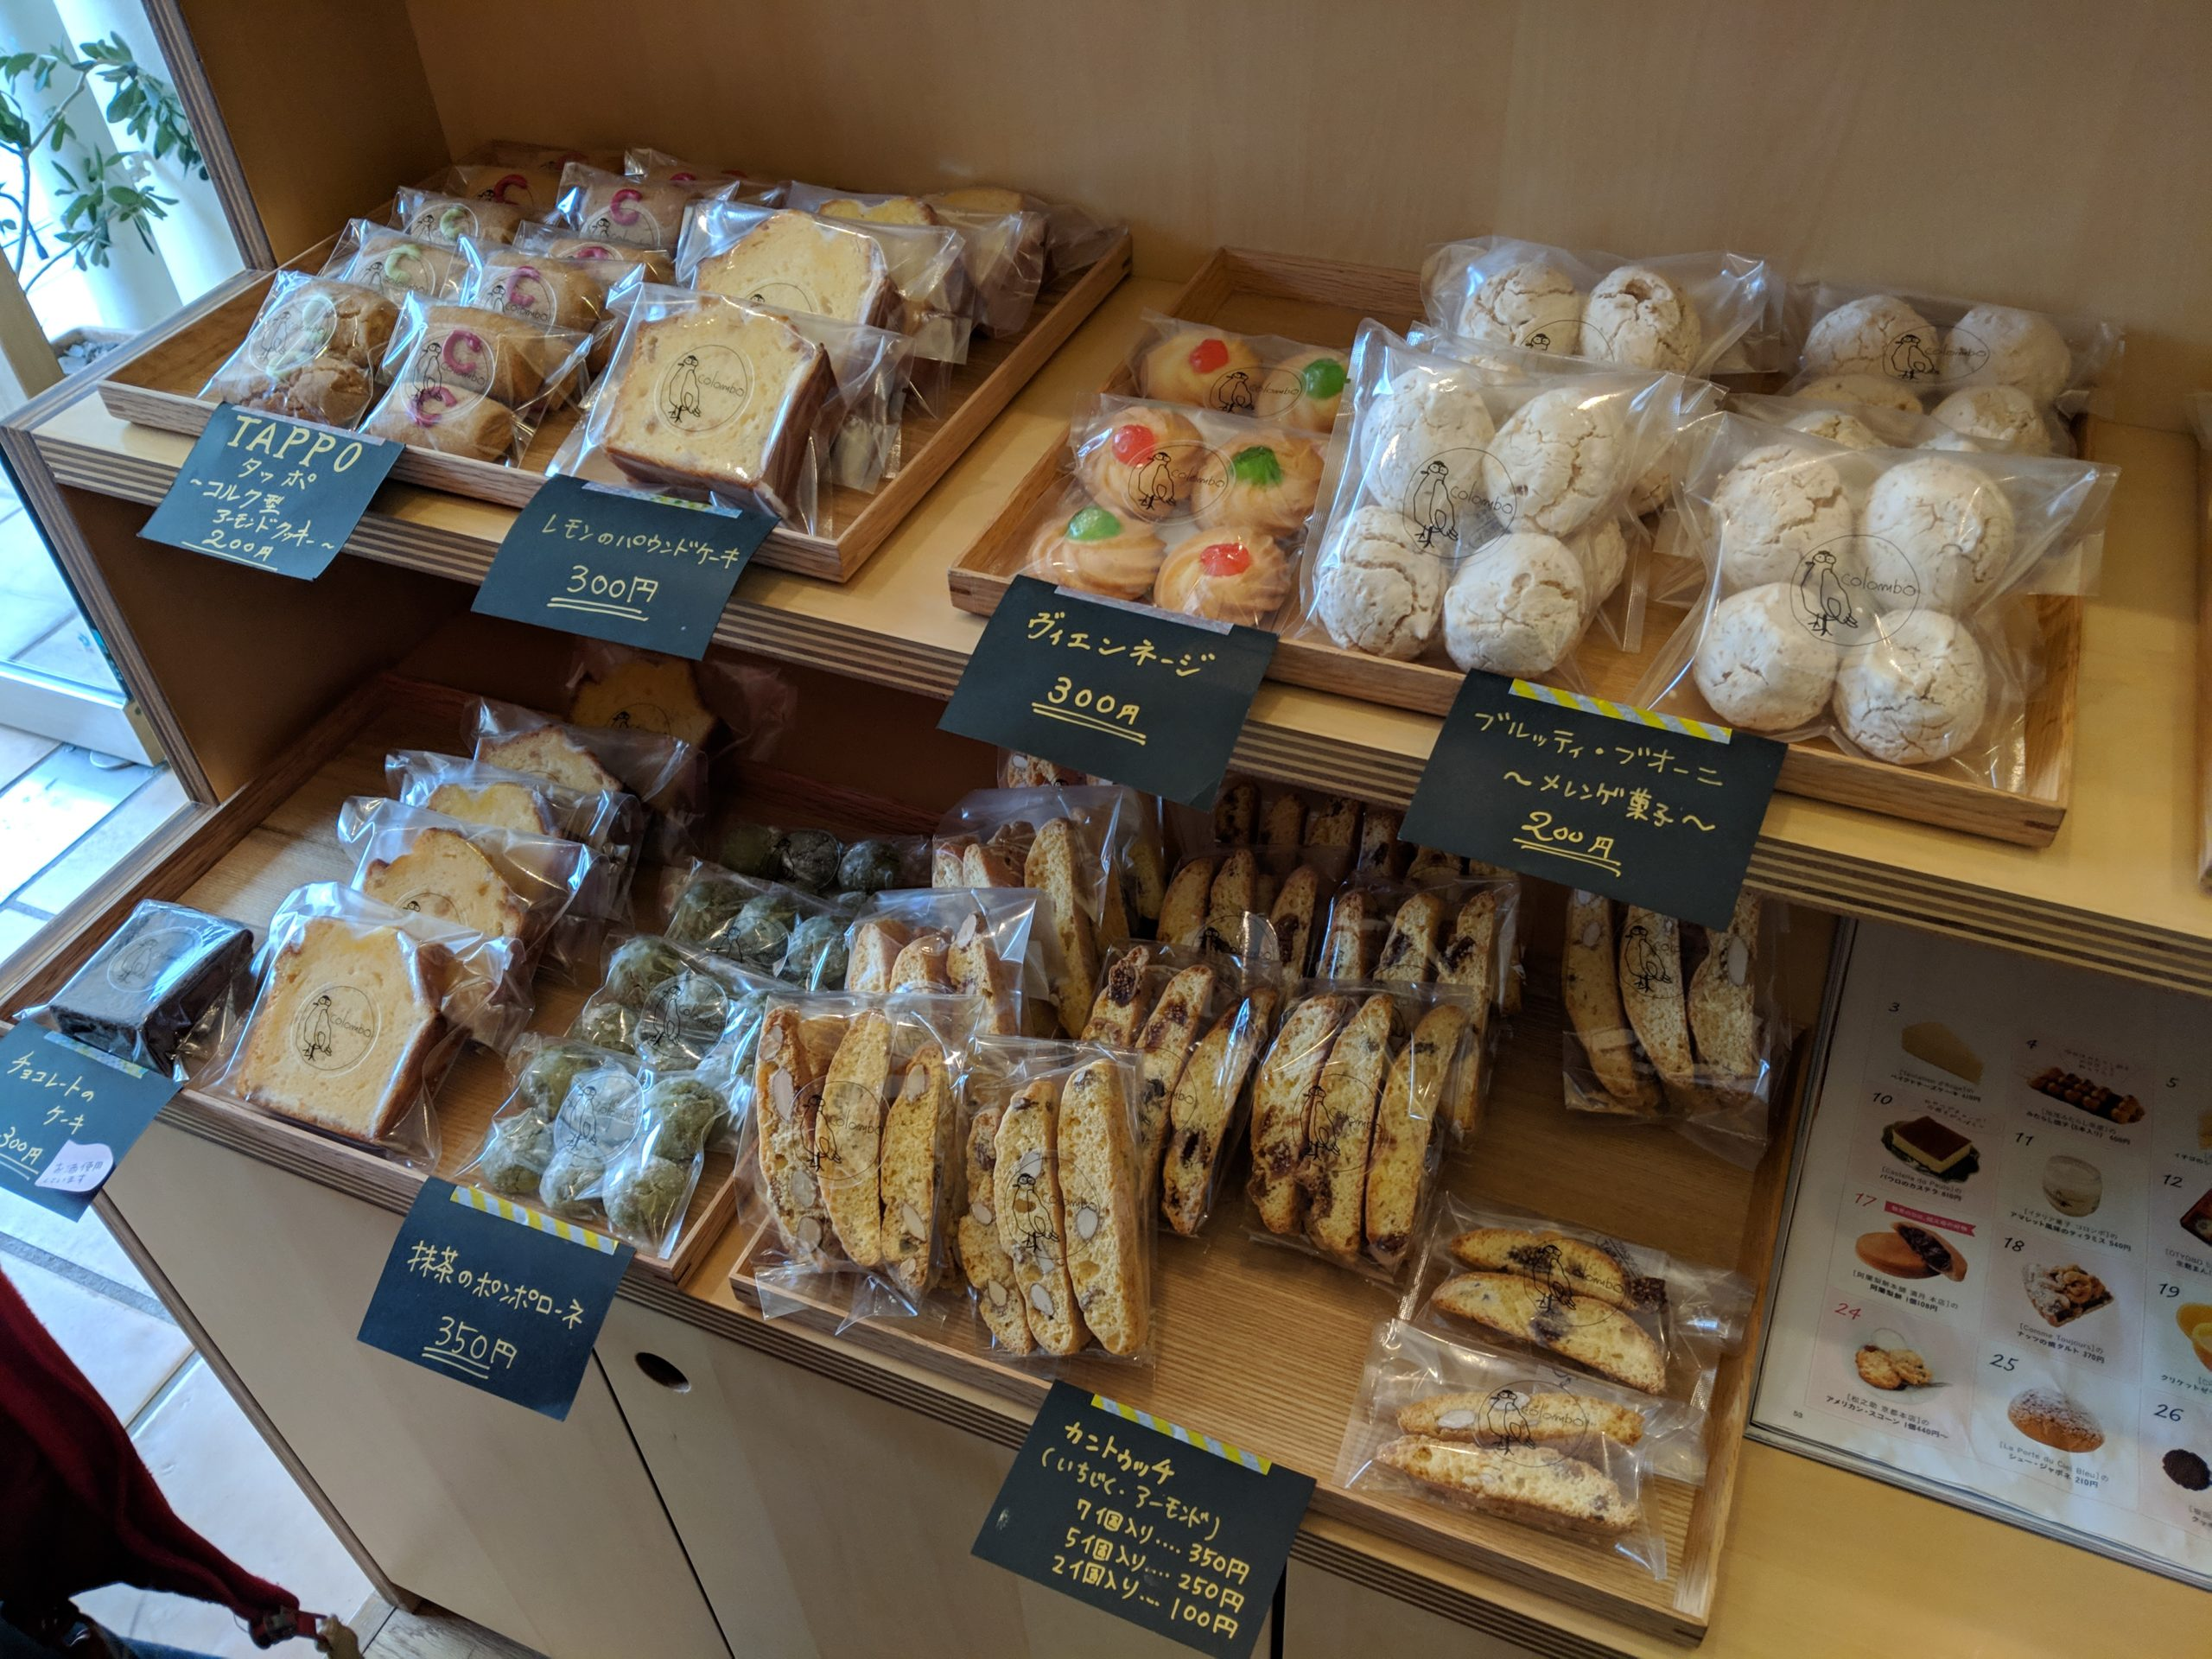 baked goods, Colombo, Kyoto, Japan